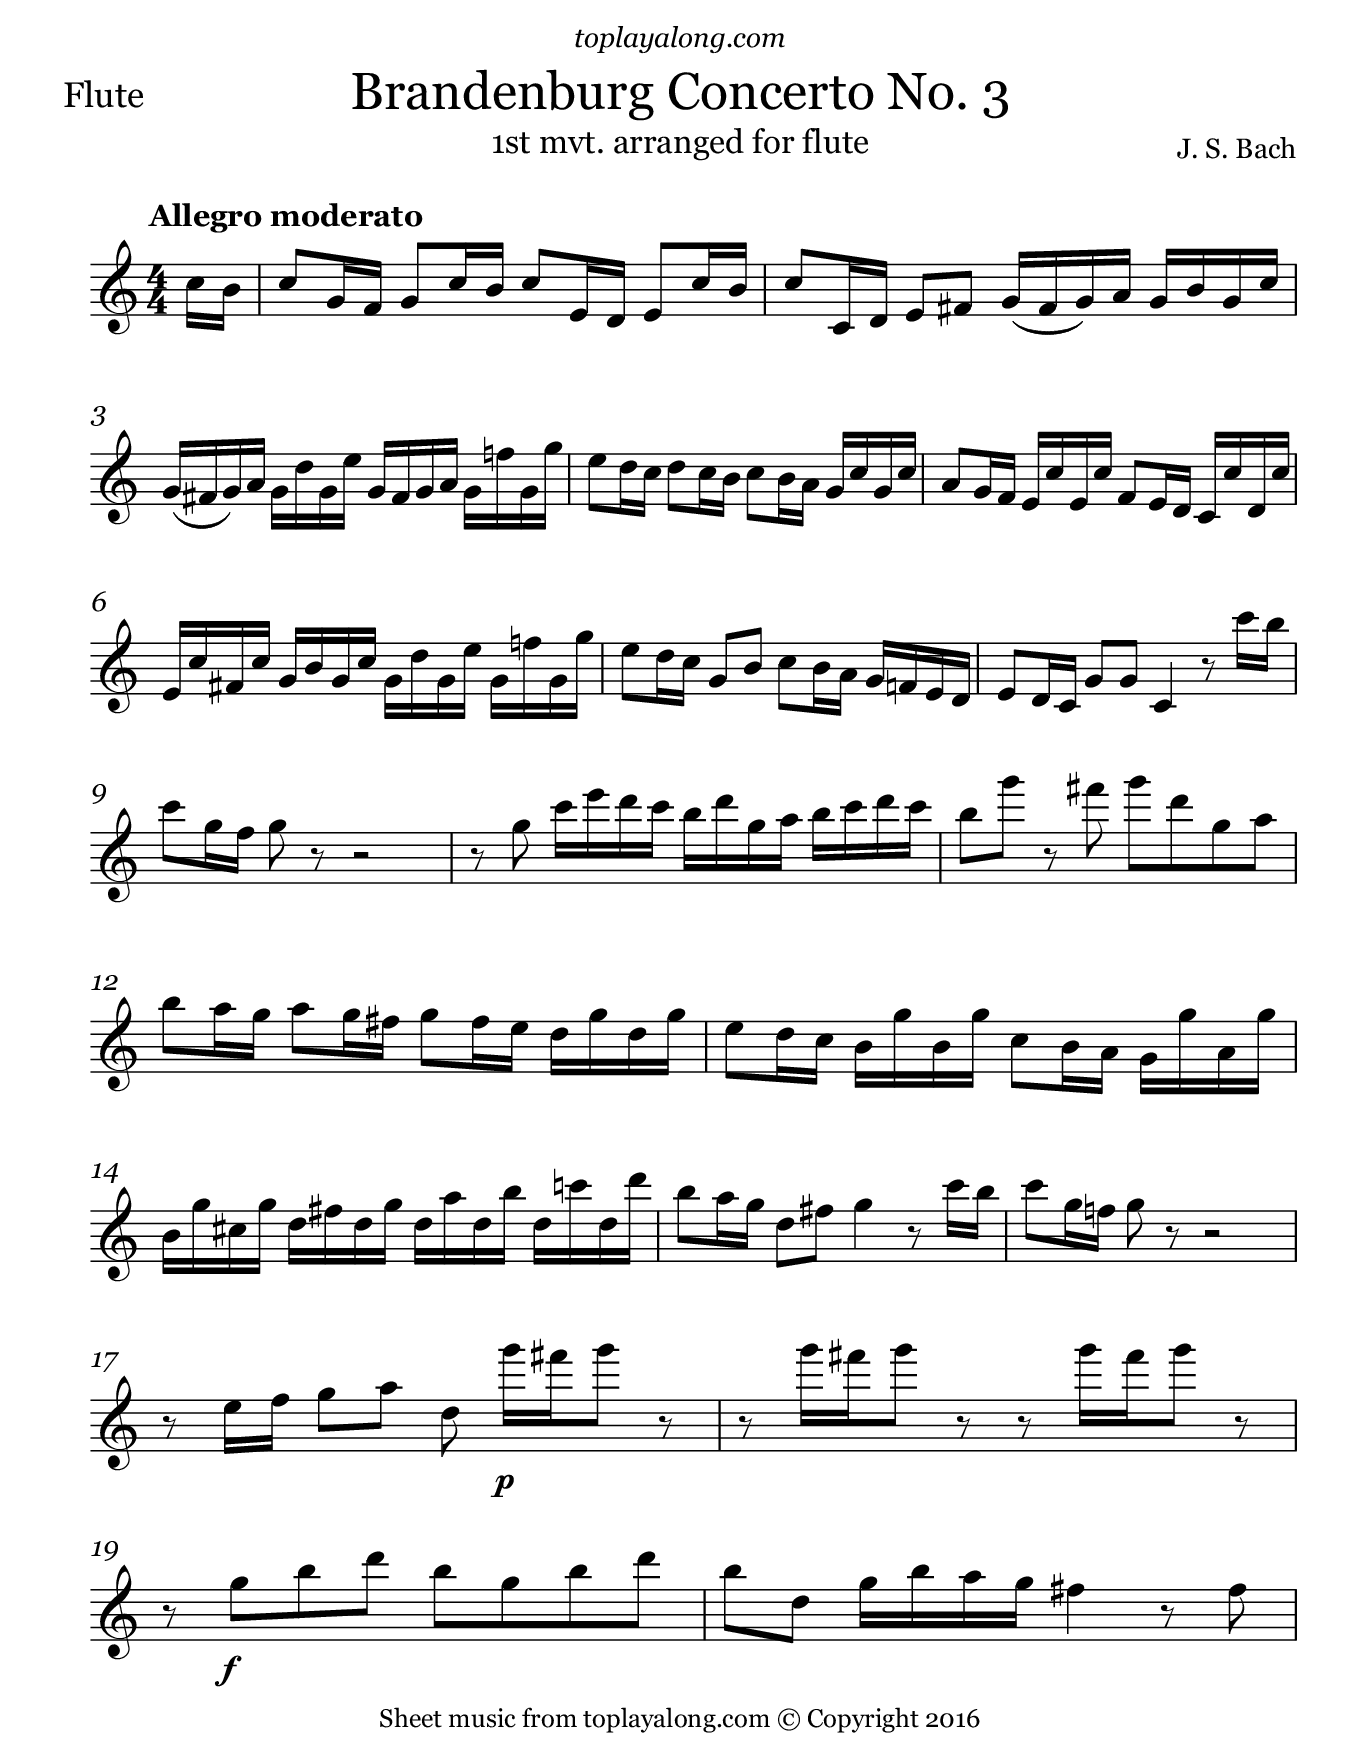 Brandenburg Concerto No. 3 (mvt. 1) by J. S. Bach. Sheet music for Flute, page 1.